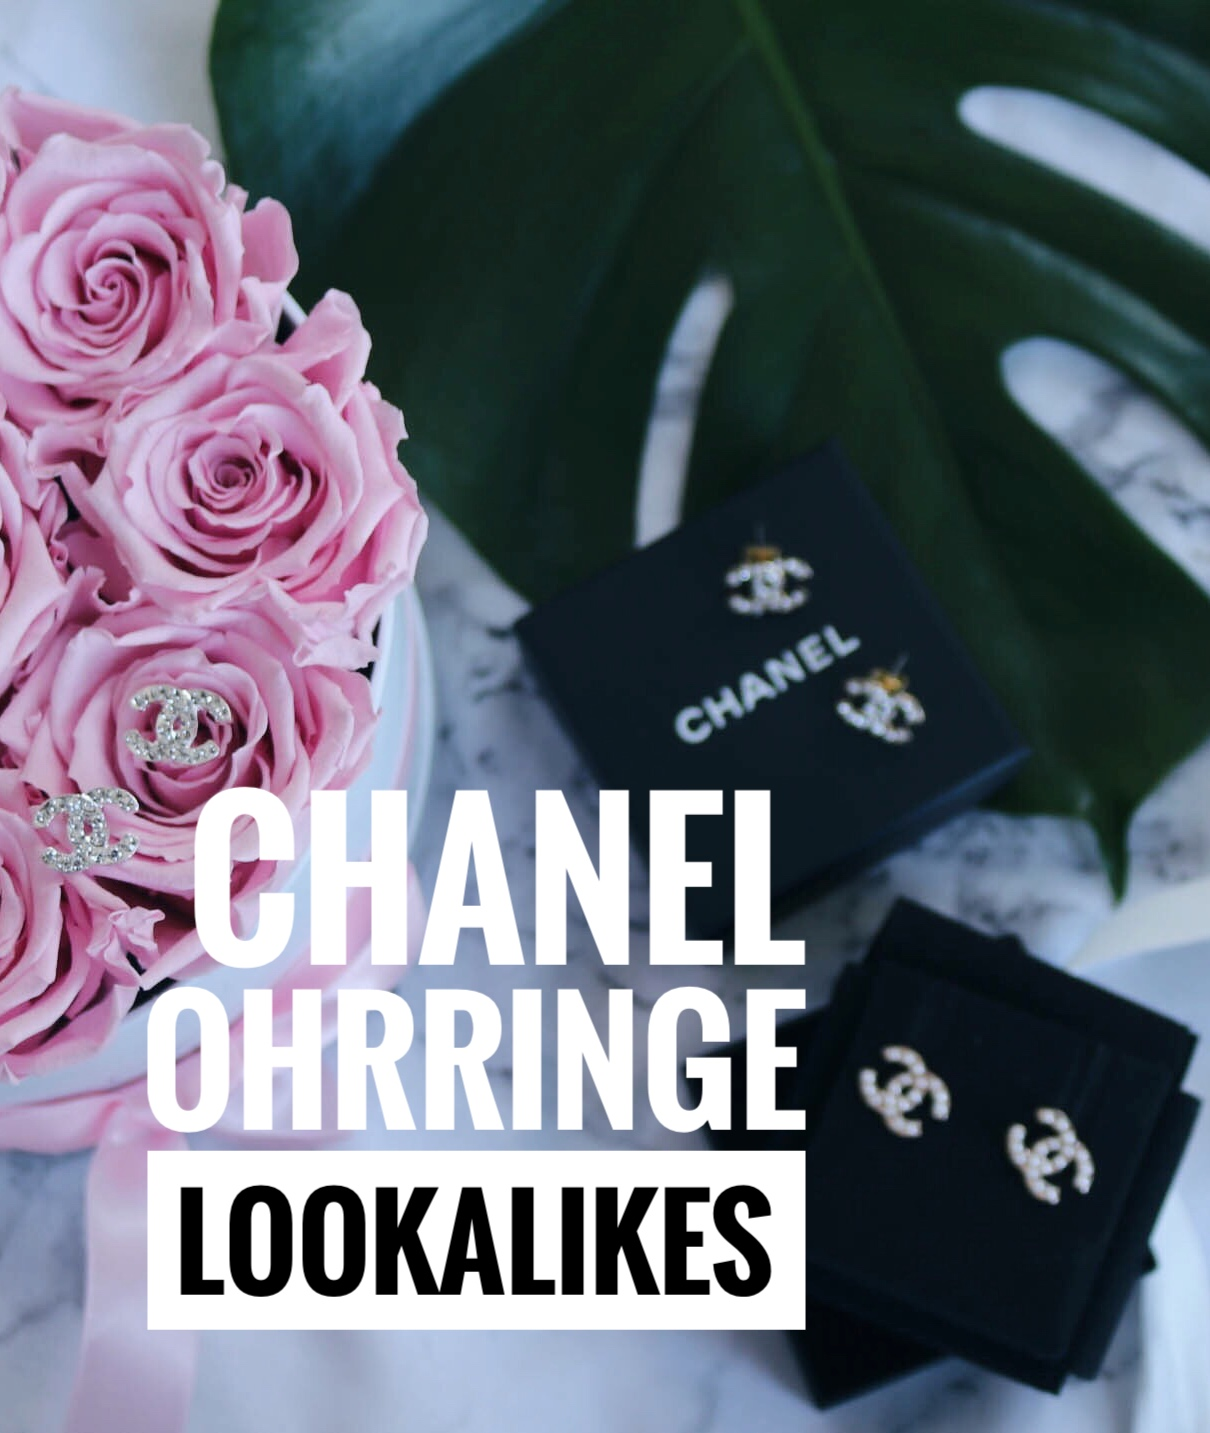 Chanel 'CC' Ohrringe Lookalikes – gibt es eine Alternative zum Original?